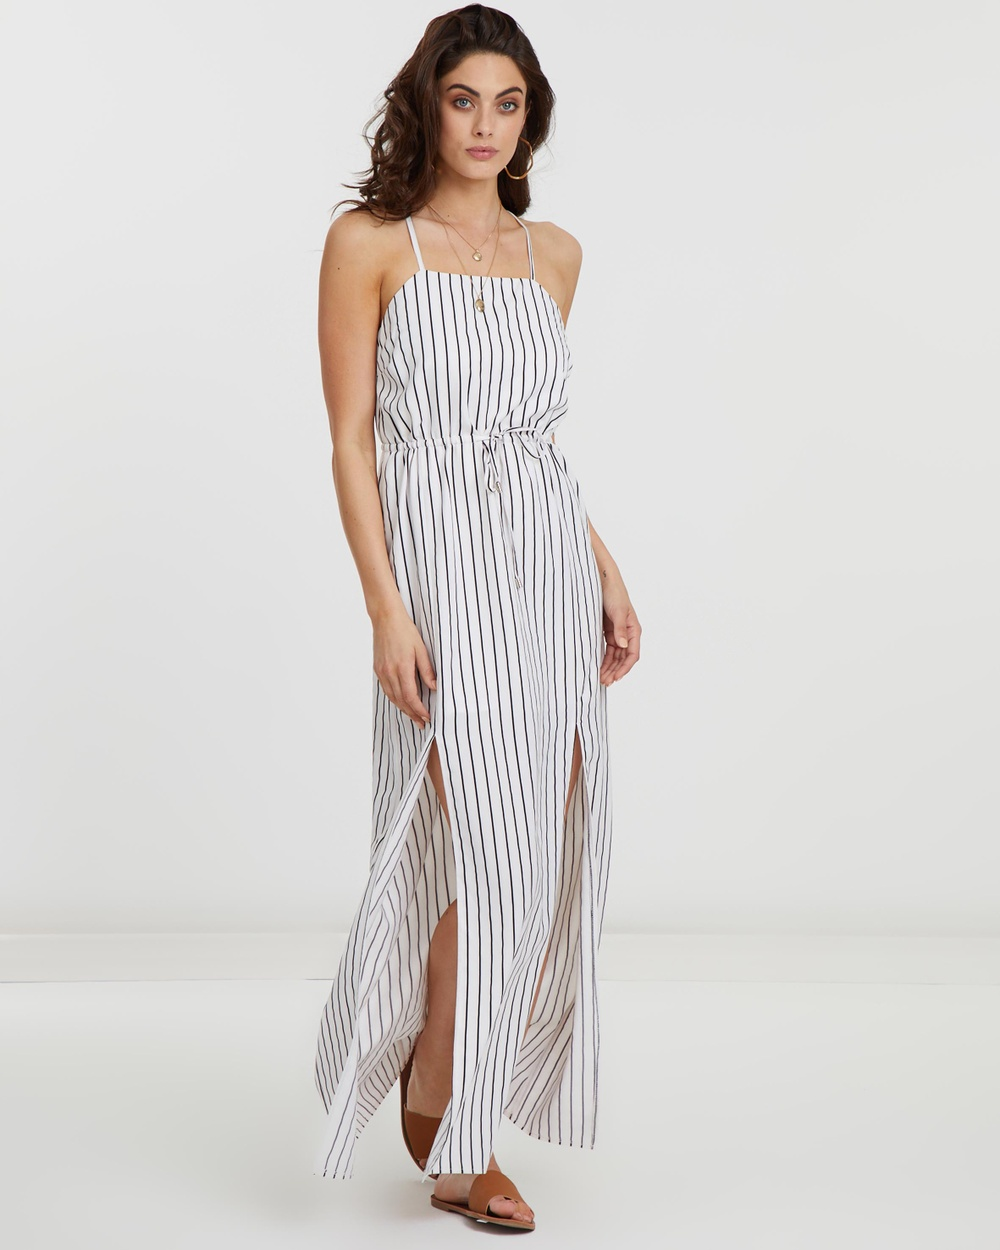 Atmos & Here Stripe ICONIC EXCLUSIVE – Selina Stripe Maxi Dress